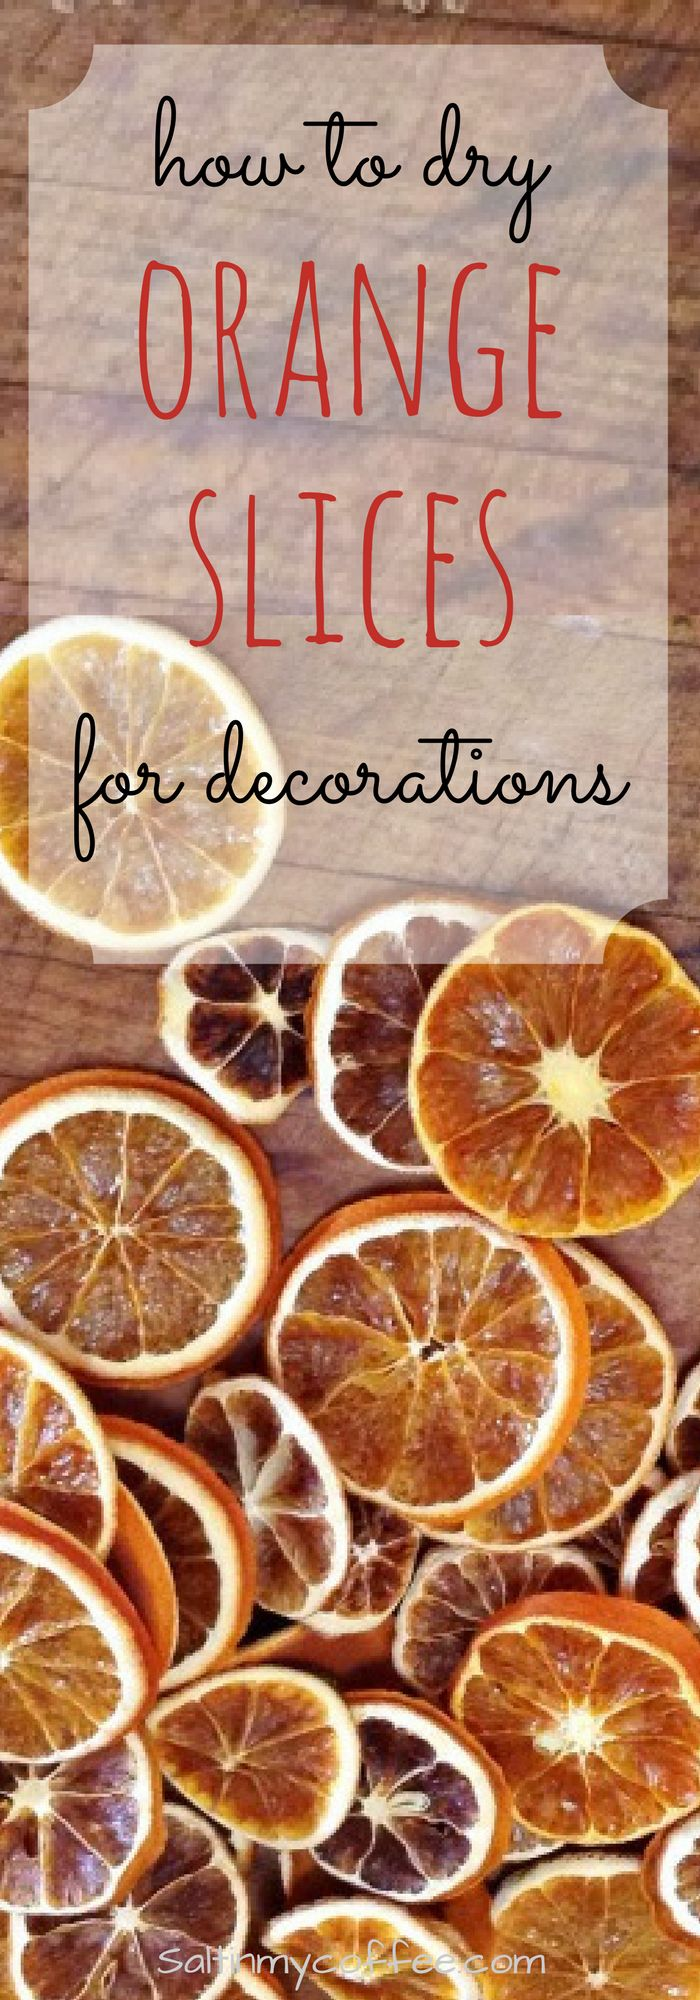 EASY DIY directions for drying your own orange slices for heritage-style decorating!